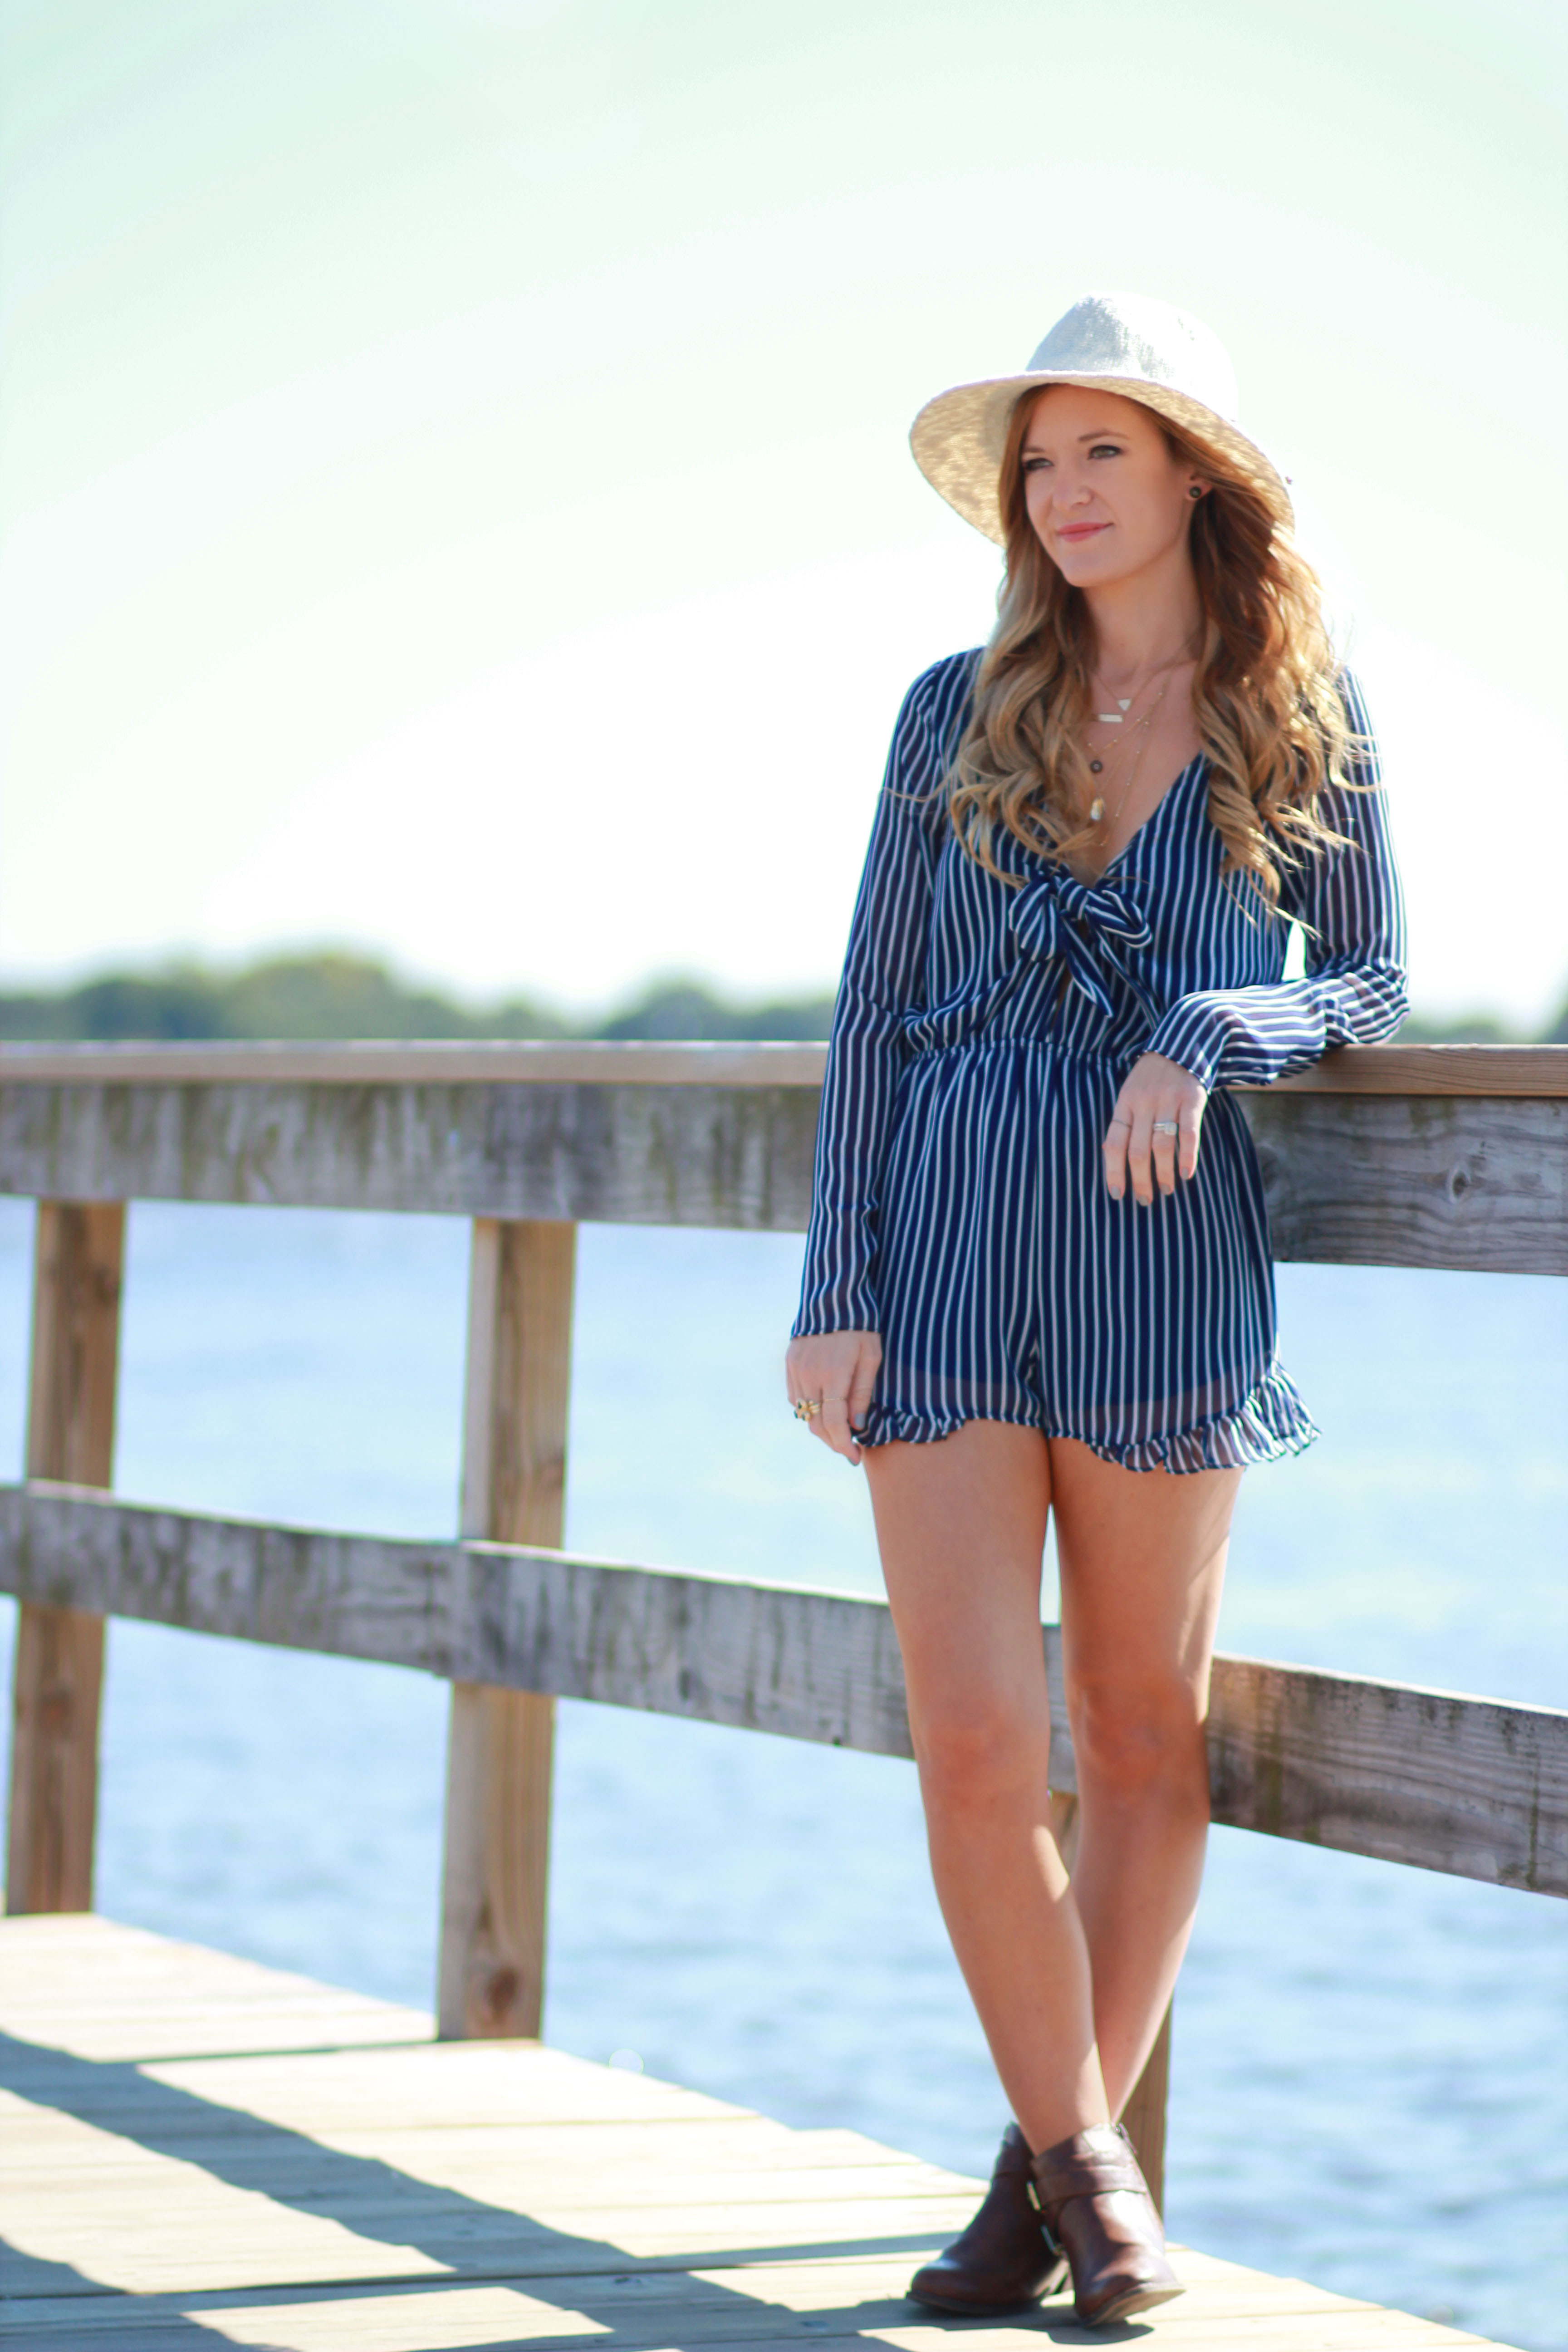 florida fashino blogger styles sugar love boutique striped romper with pacsun hat and jcpenney booties for a casual fall outfit